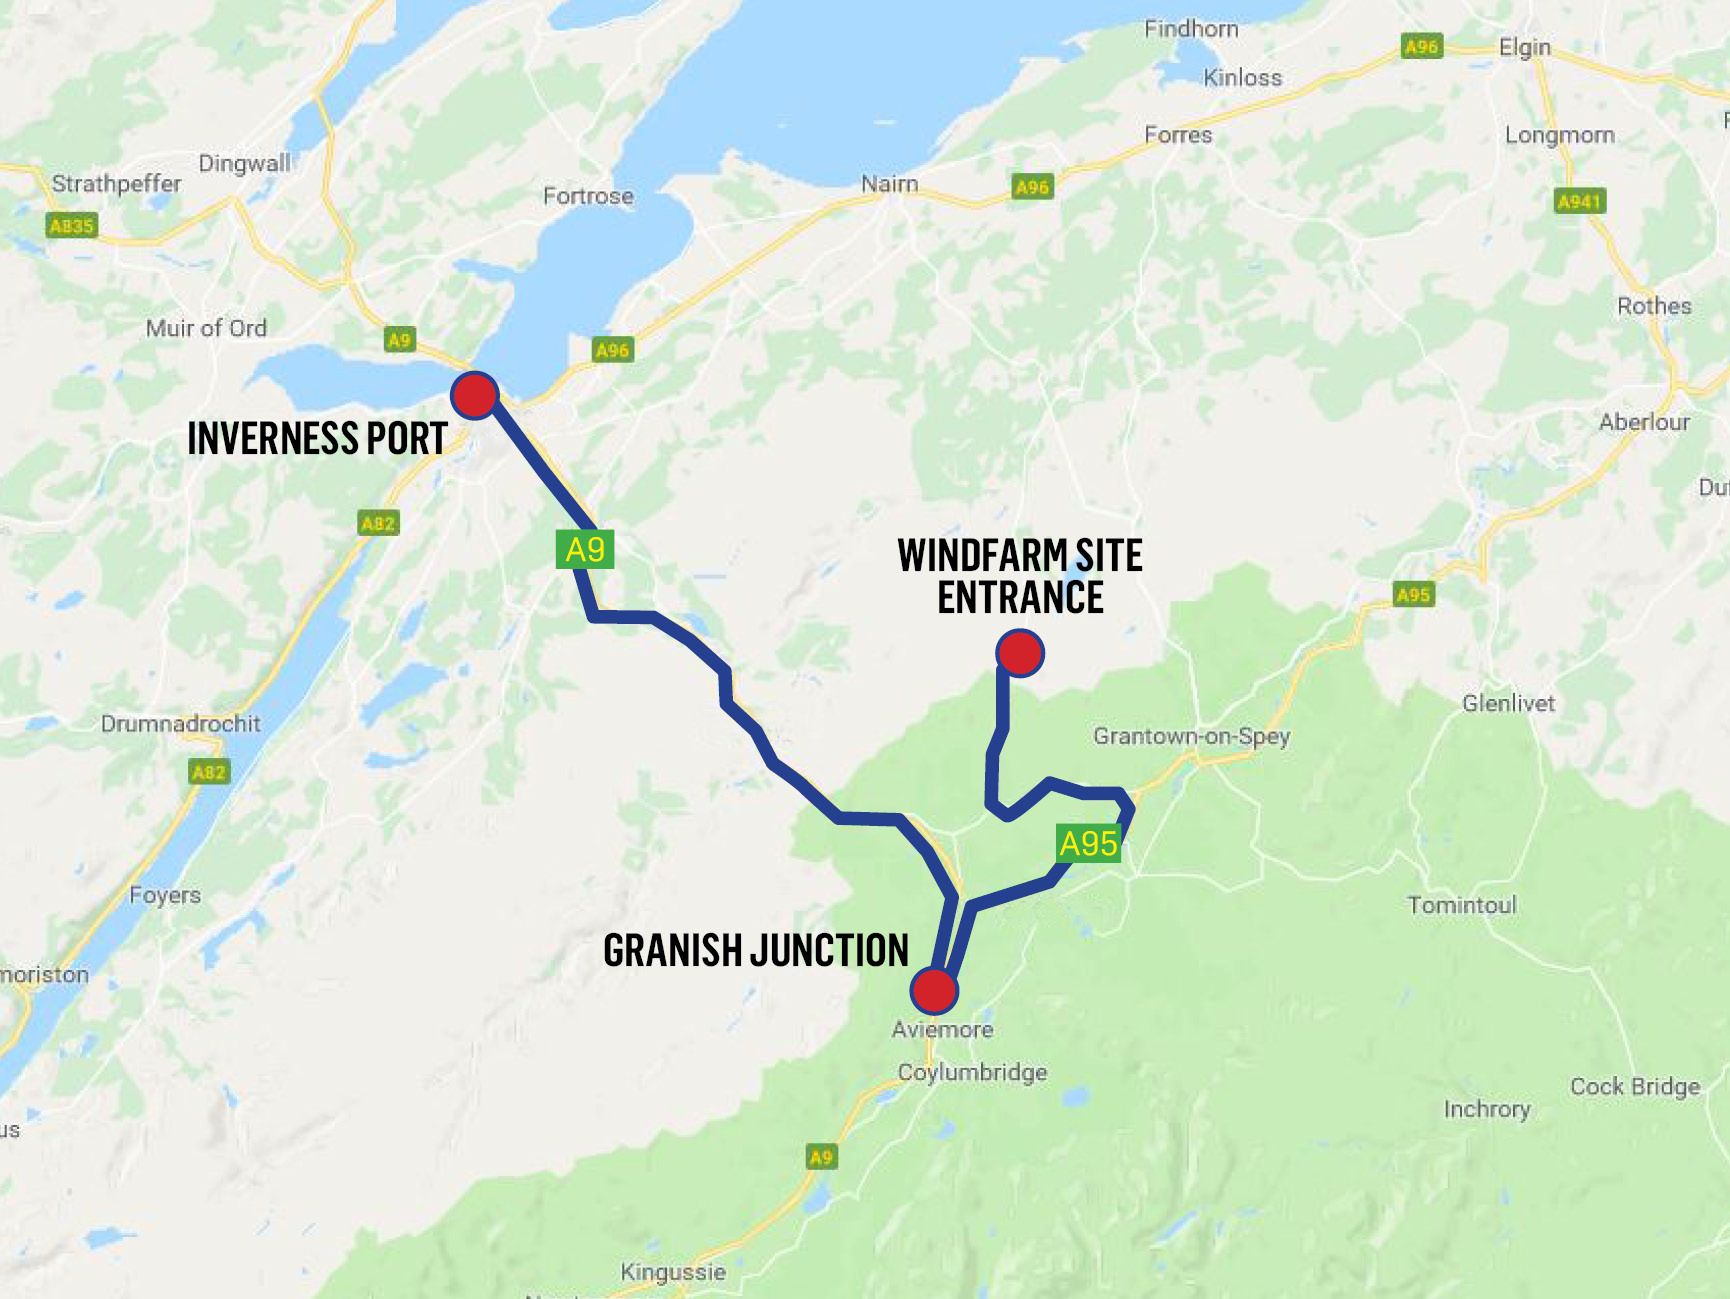 The route from Inverness to Tom nan Clach for the parts, which will have a police escort to minimise the disruption.